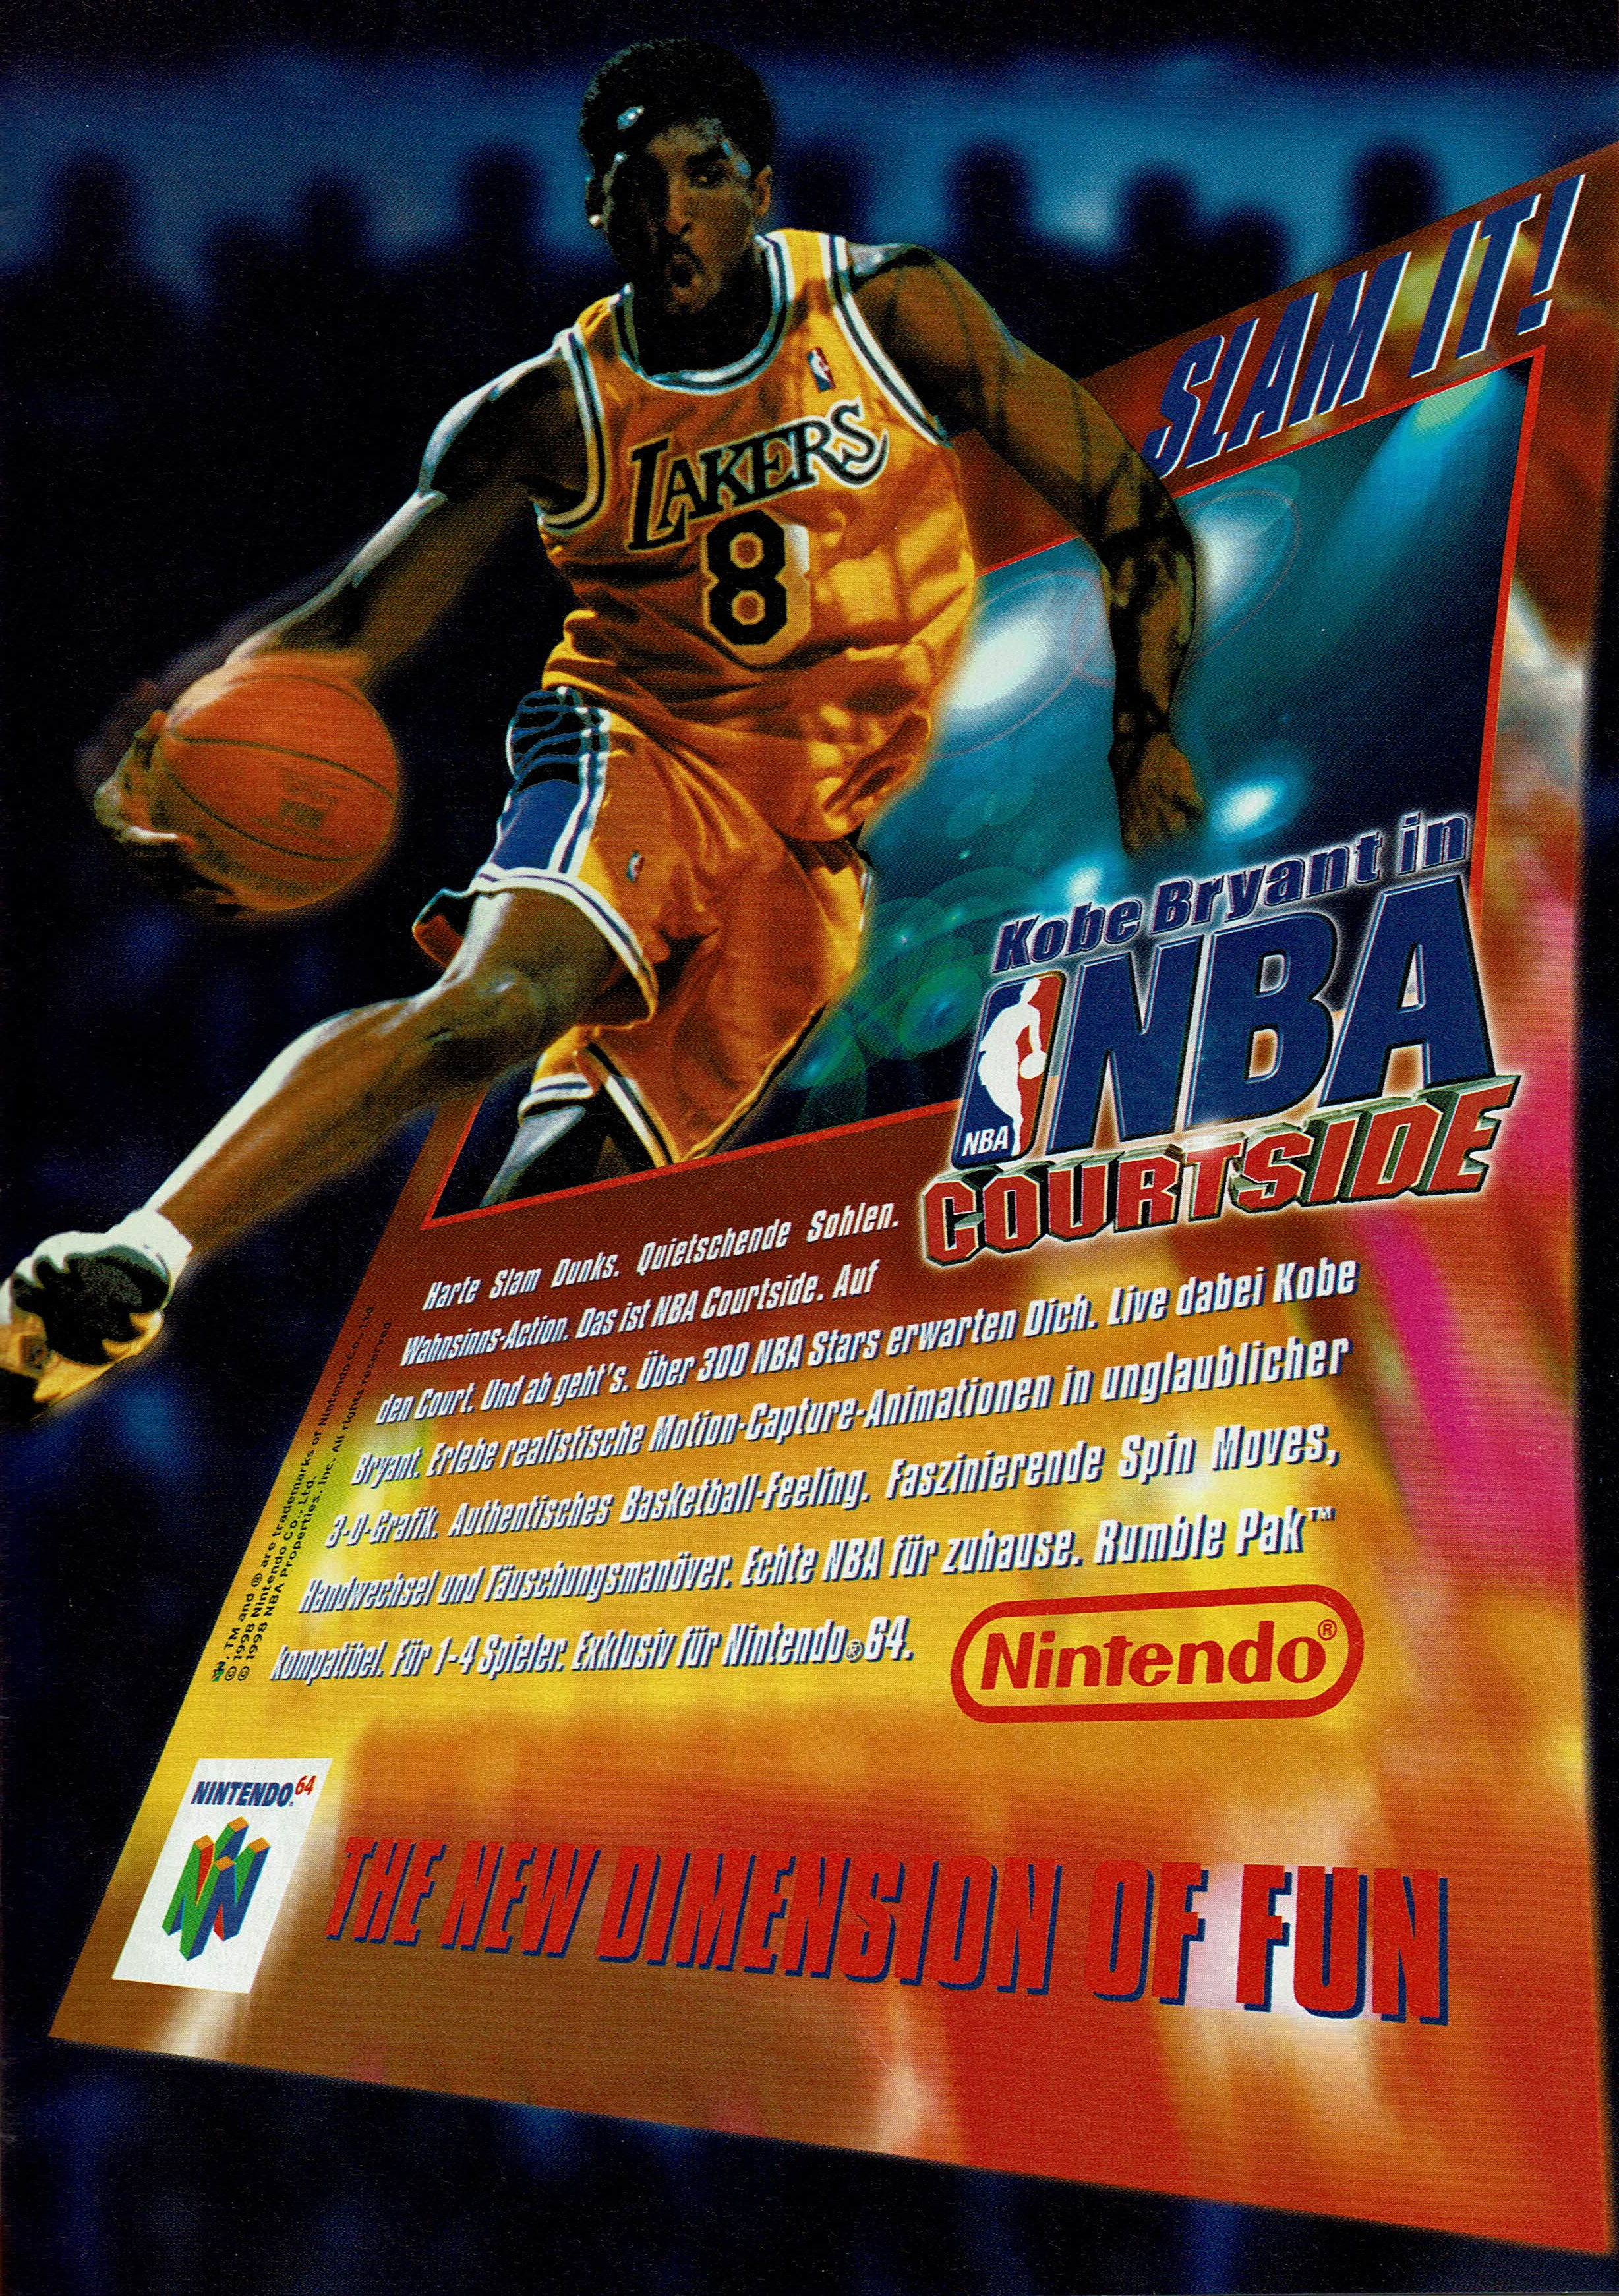 f629e8403fa4 Kobe Bryant in NBA Courtside (1998) promotional art - MobyGames